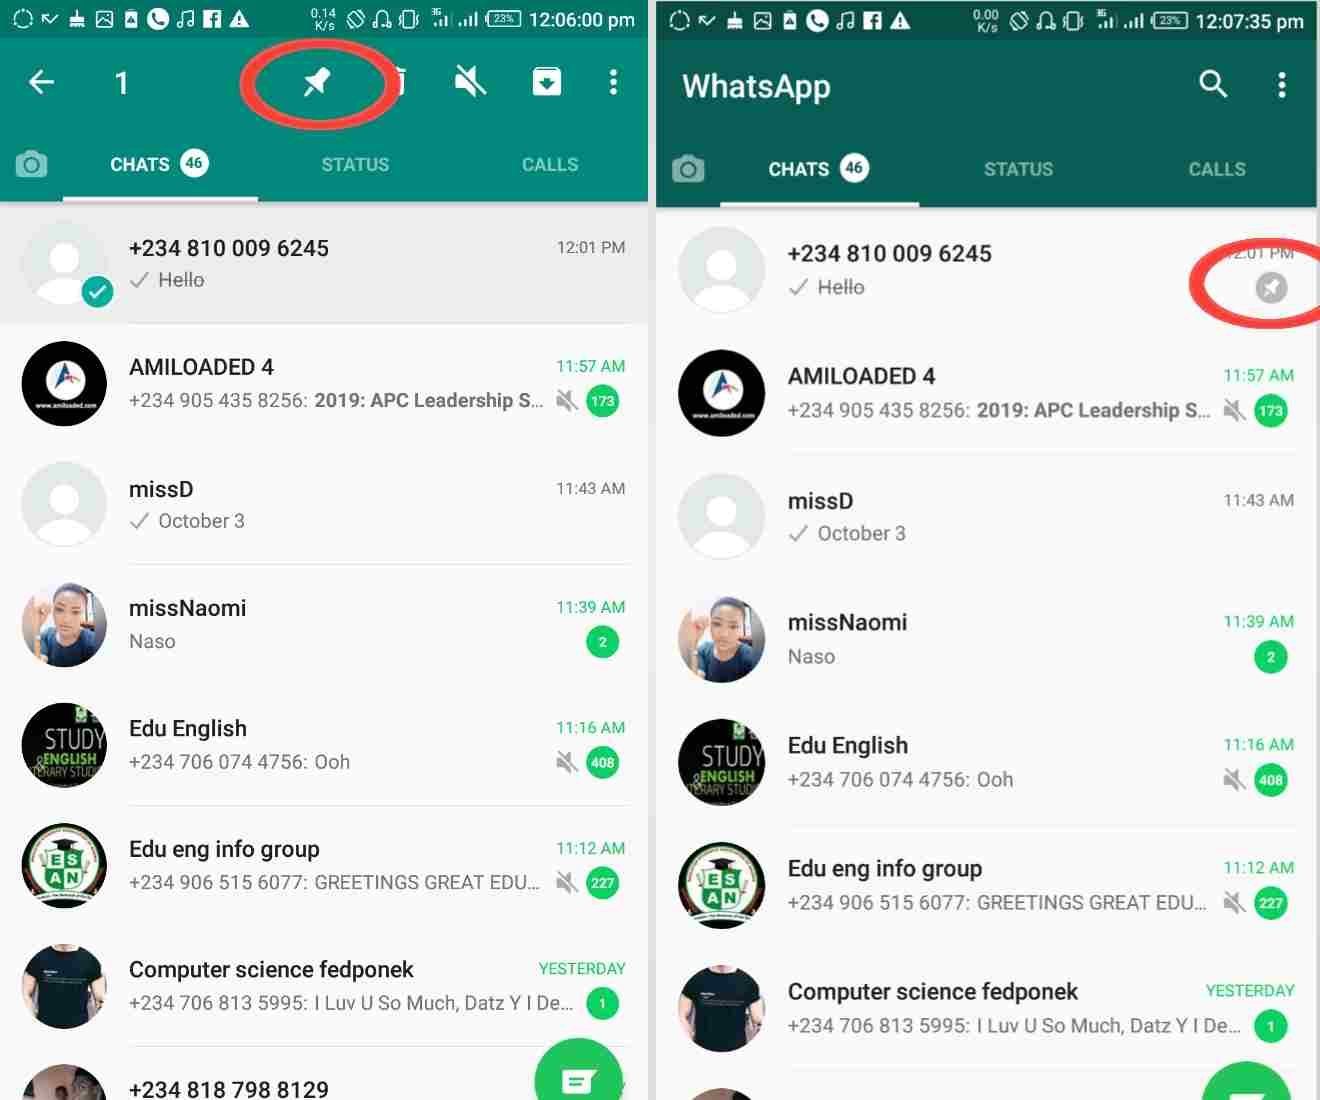 whatsapp tricks 101 - how to pin a contact to the top of your list